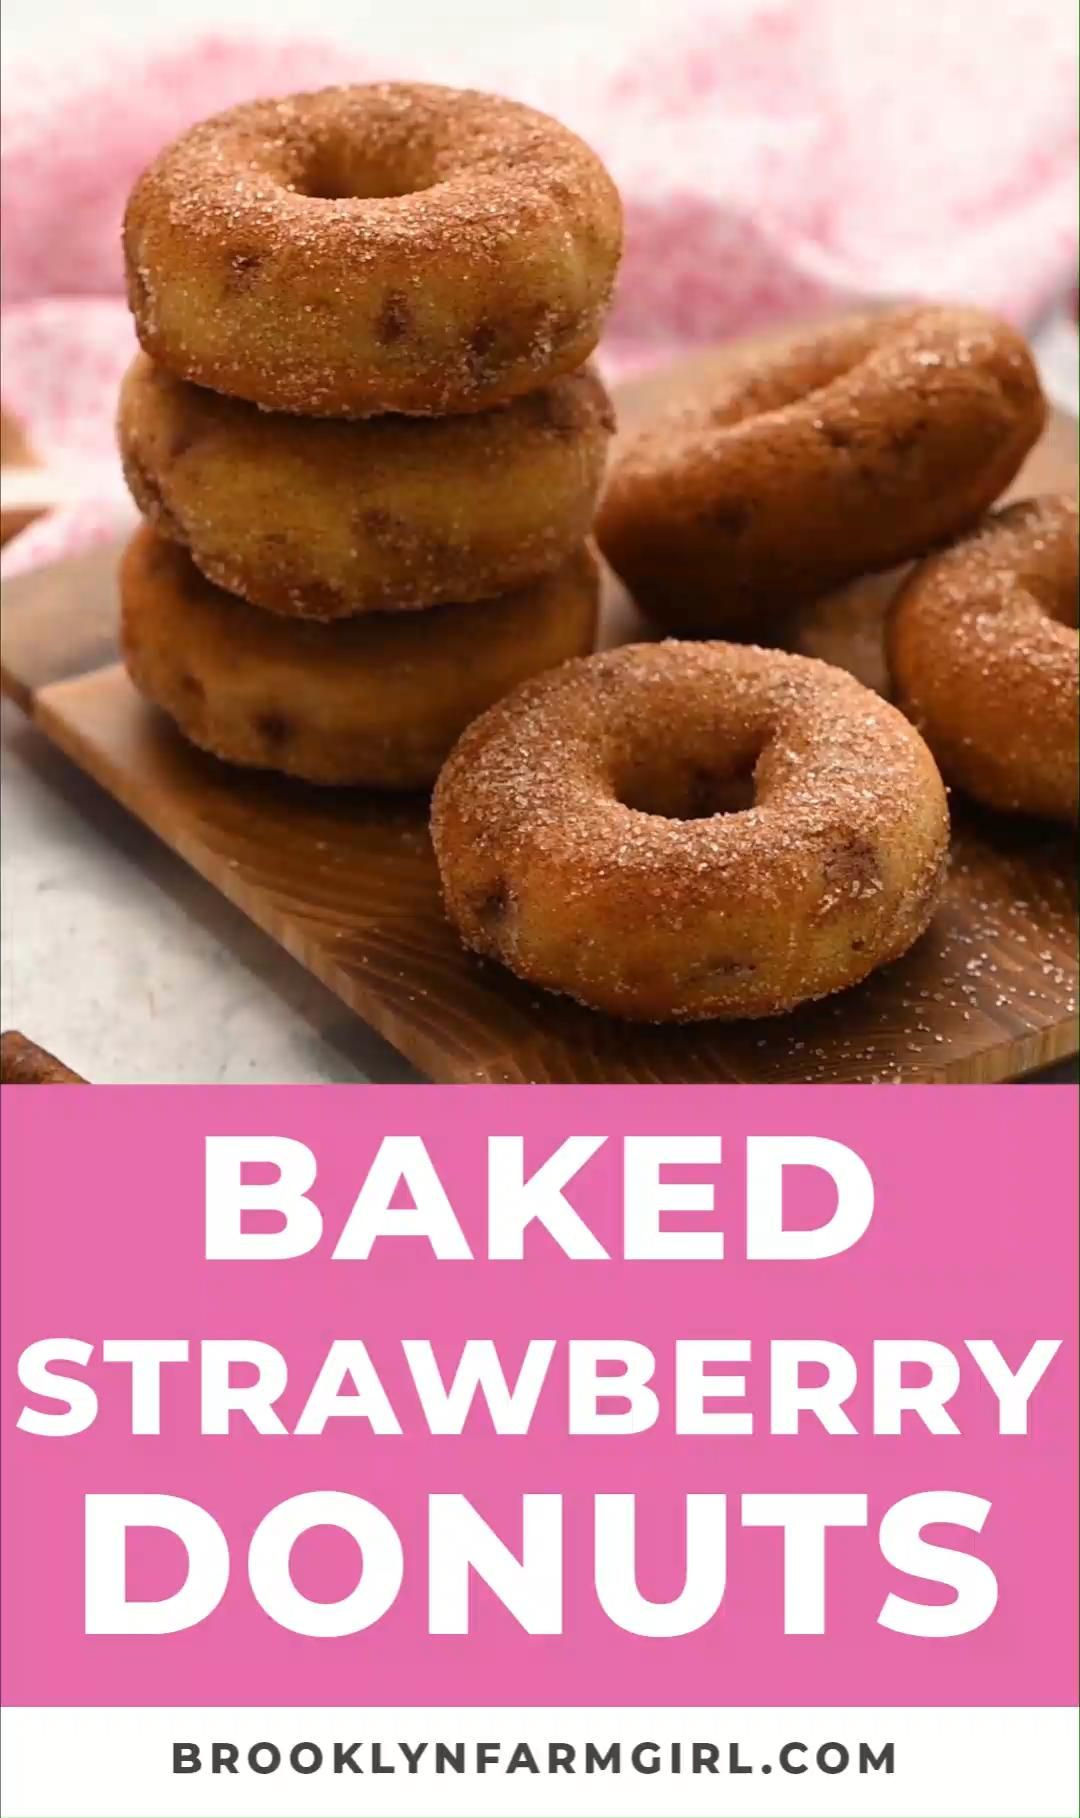 Photo of Baked Strawberry Donuts